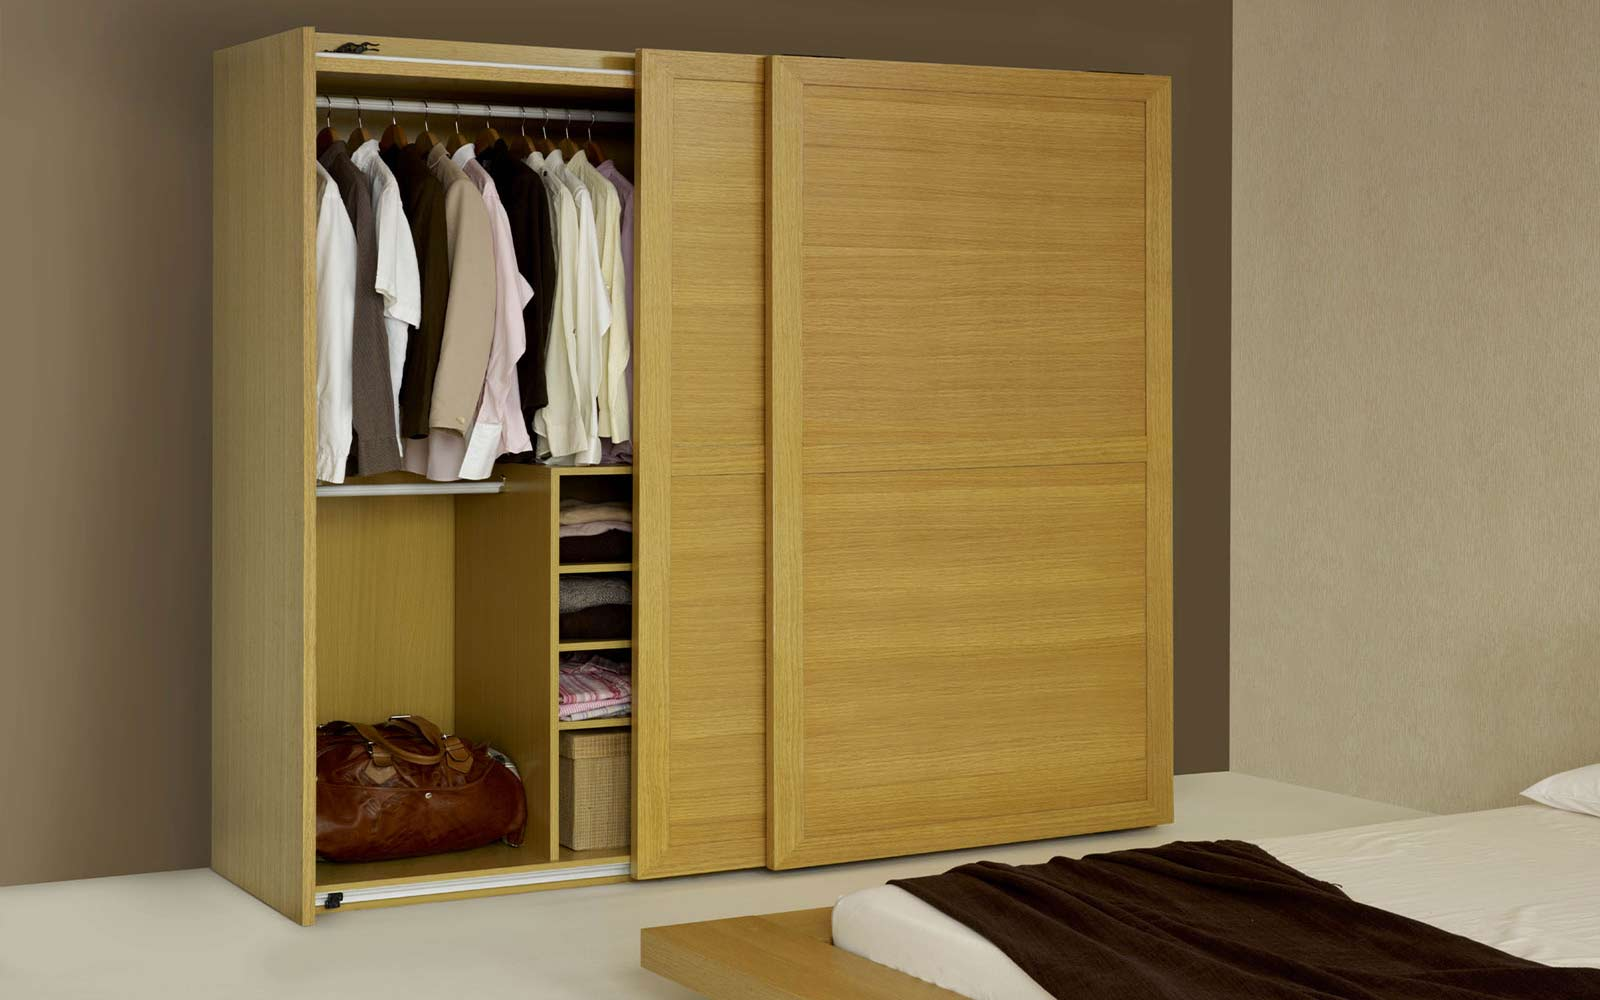 Modular Wardrobe wardrobe fittings and accessories dealers in delhi - india